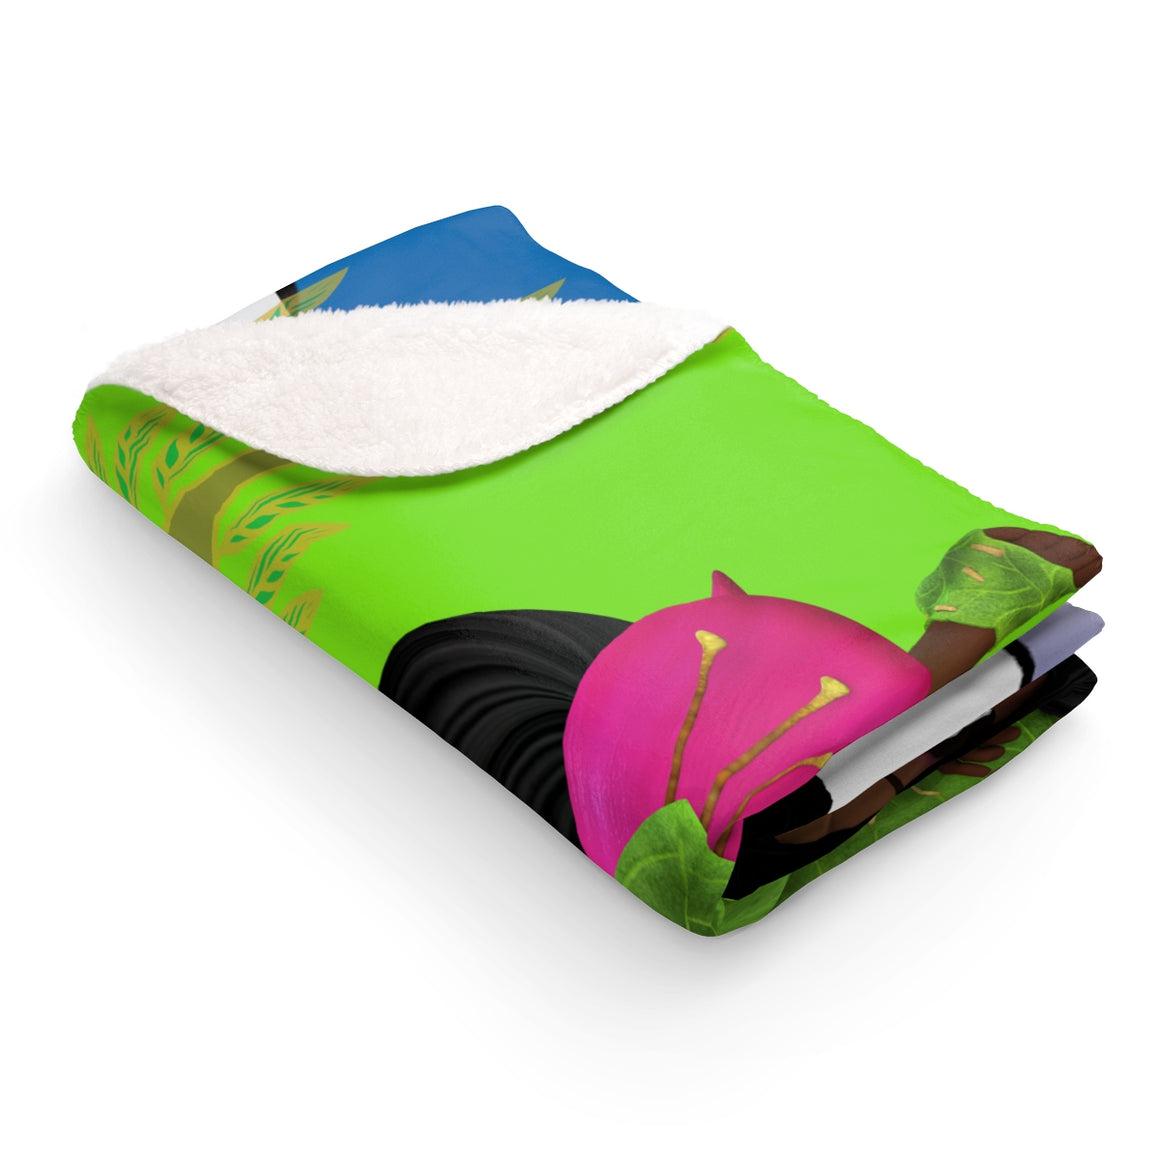 My Fabulous Style Made to Order In the Meadow Sherpa Fleece Blanket-Luxurious Fleece Blanket